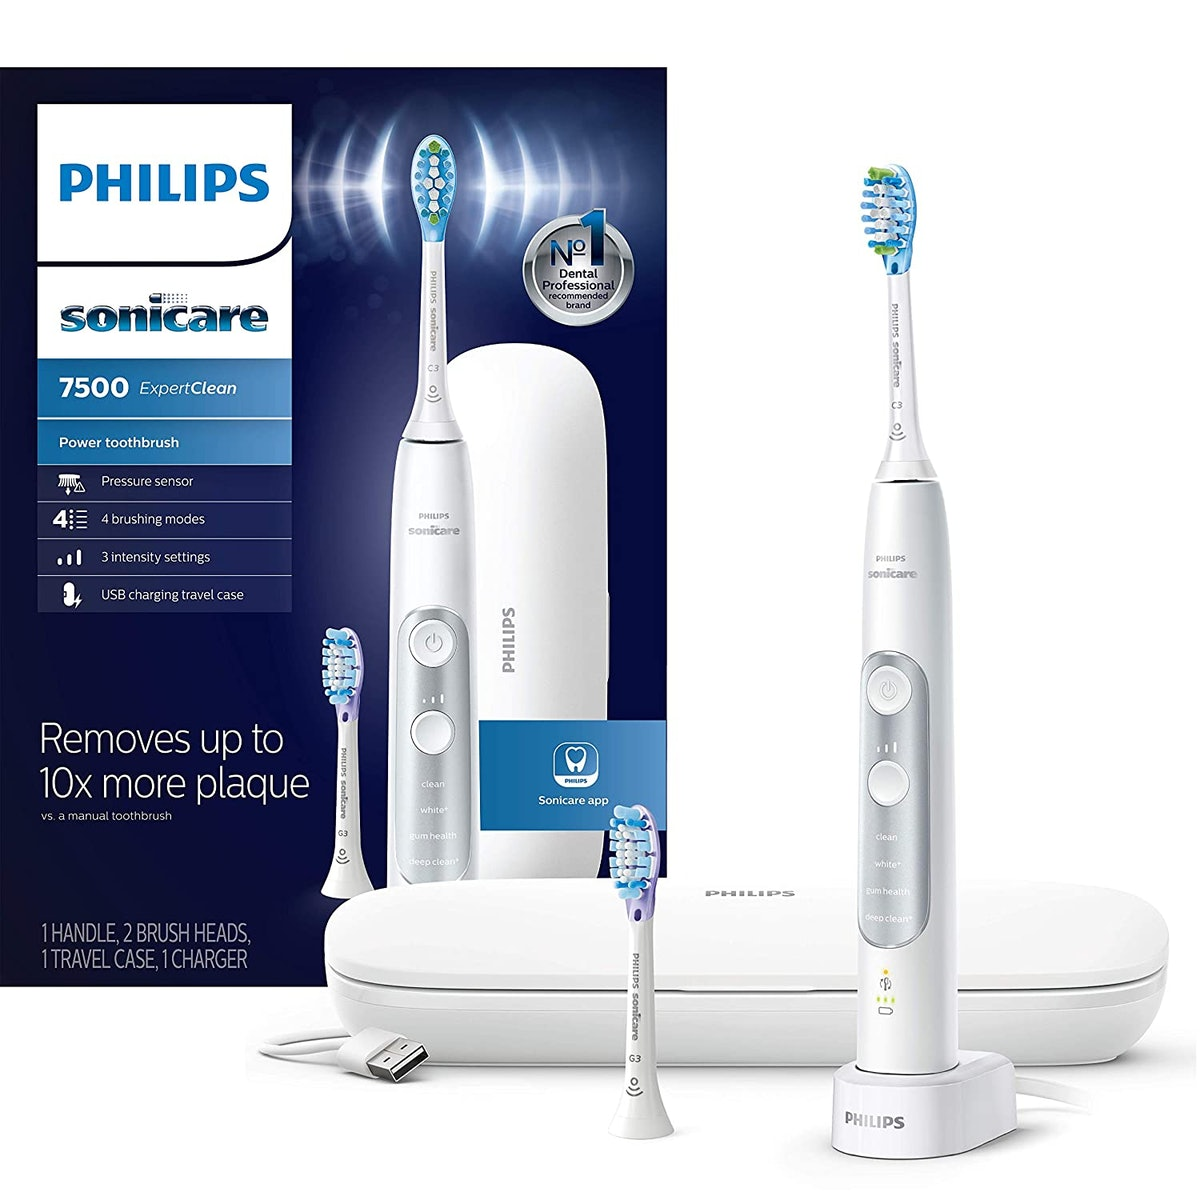 Philips Sonicare ExpertClean 7500 Bluetooth Electric Toothbrush